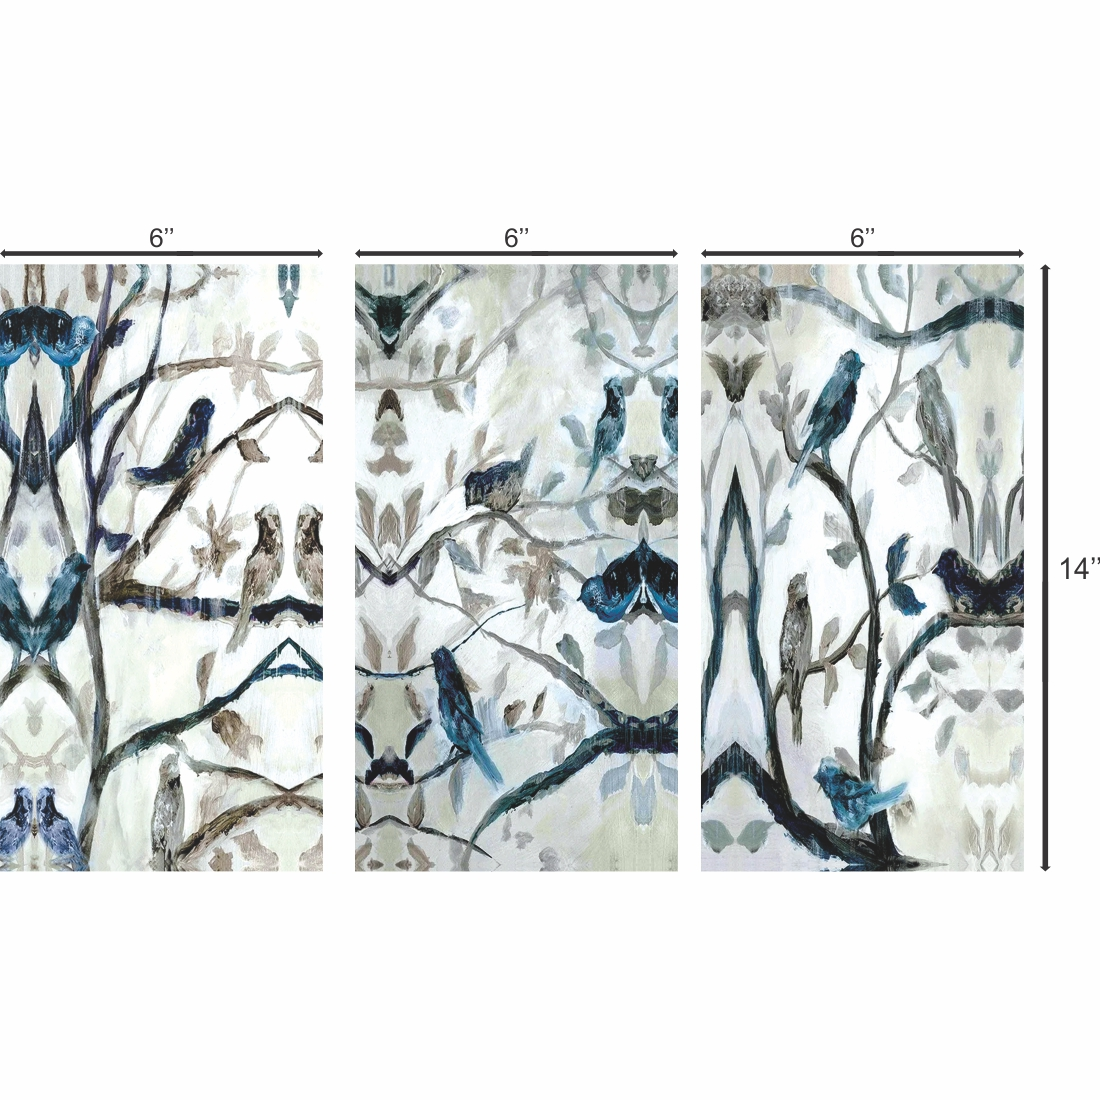 Canvas Beautiful Birds Sit On Branch  Leaves Painting, 6Inch X 14 Inch Each Set